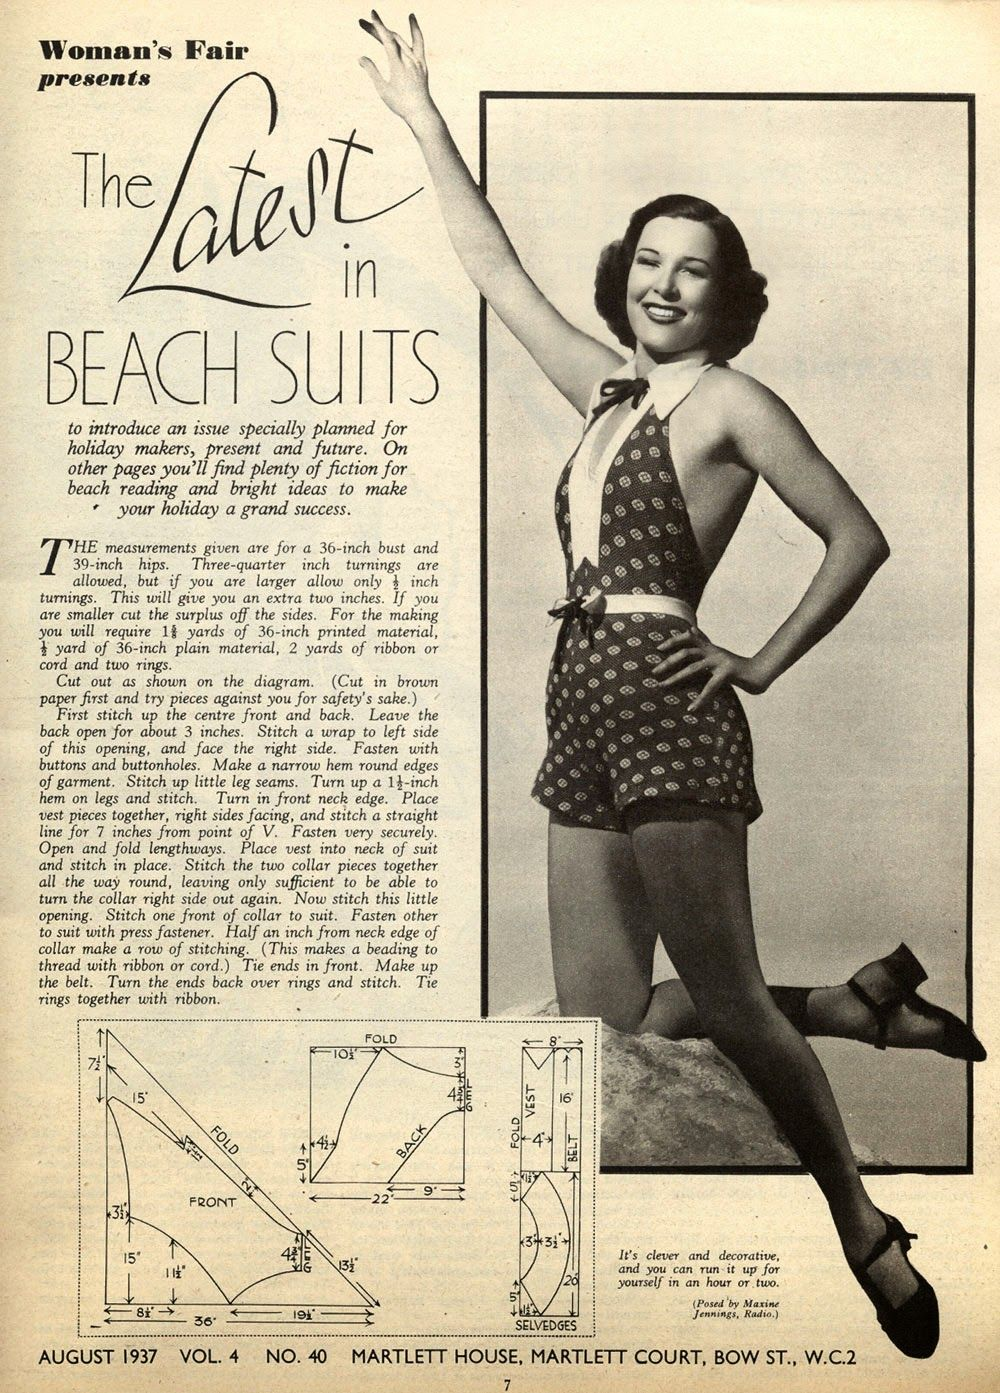 It's the latest in beach (swim) suits! #vintage #1930s #1940s #swimsuits #beach